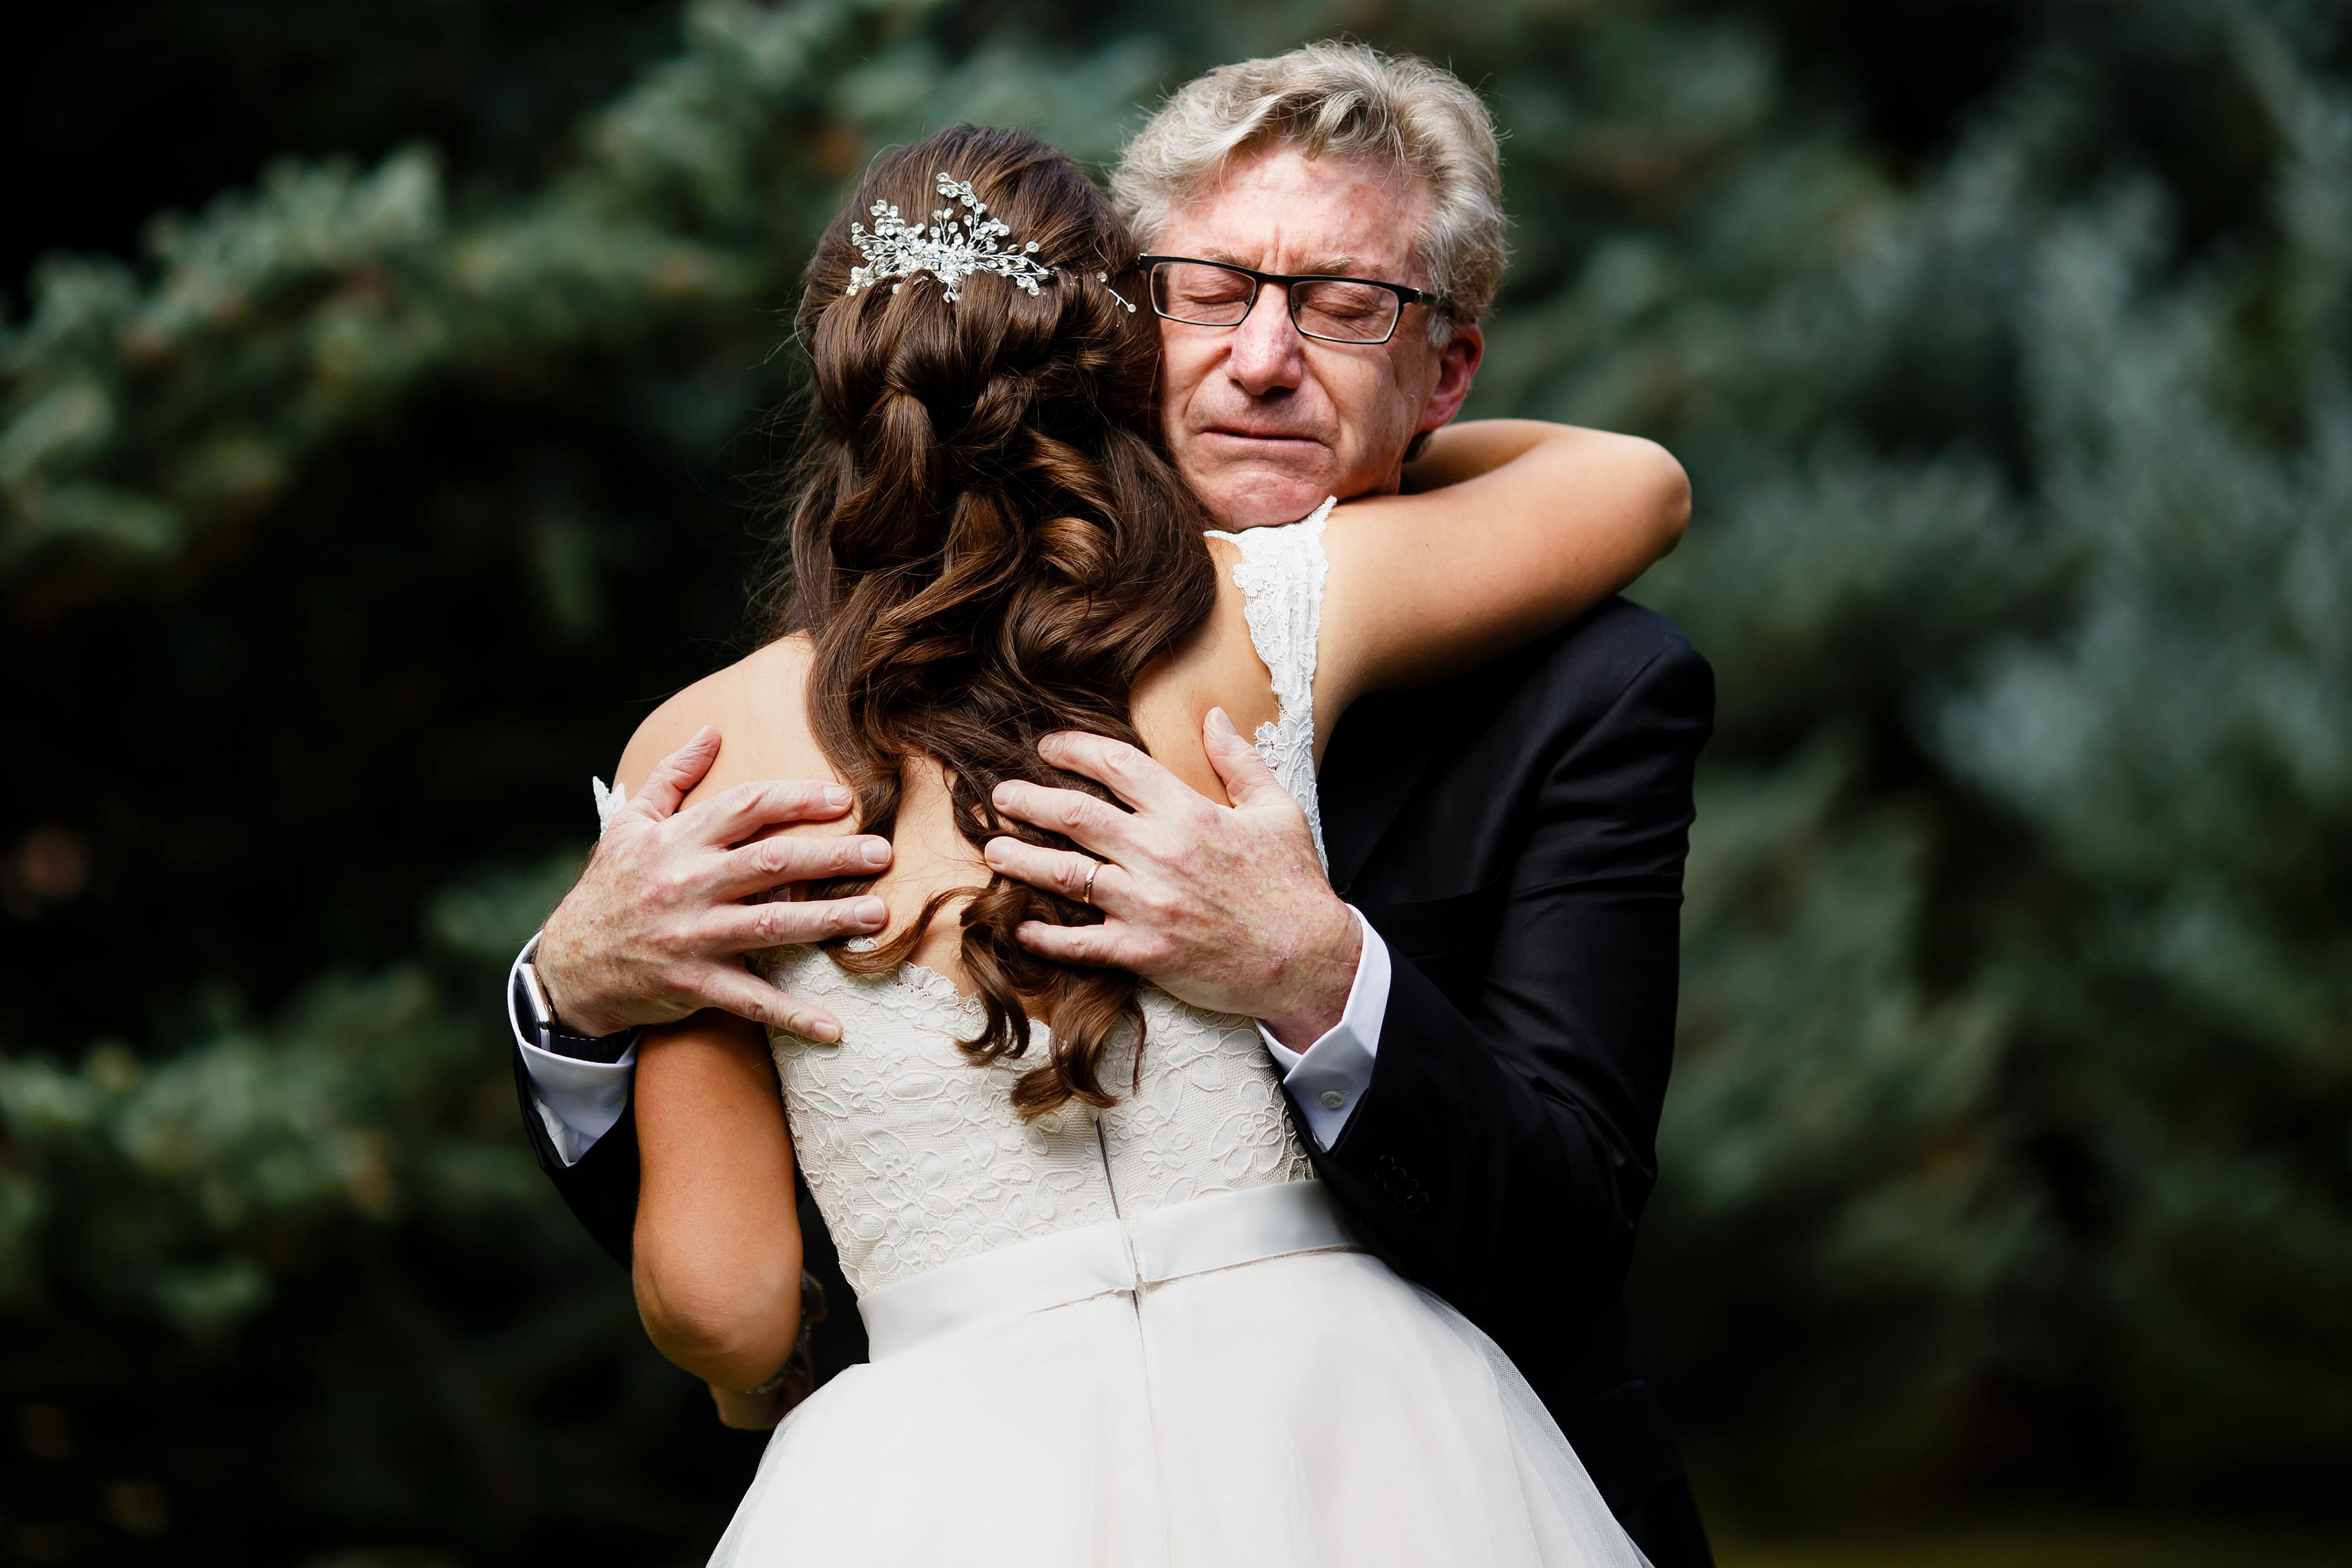 Richard embraces his daughter after seeing her in her gown for the first time on her wedding day